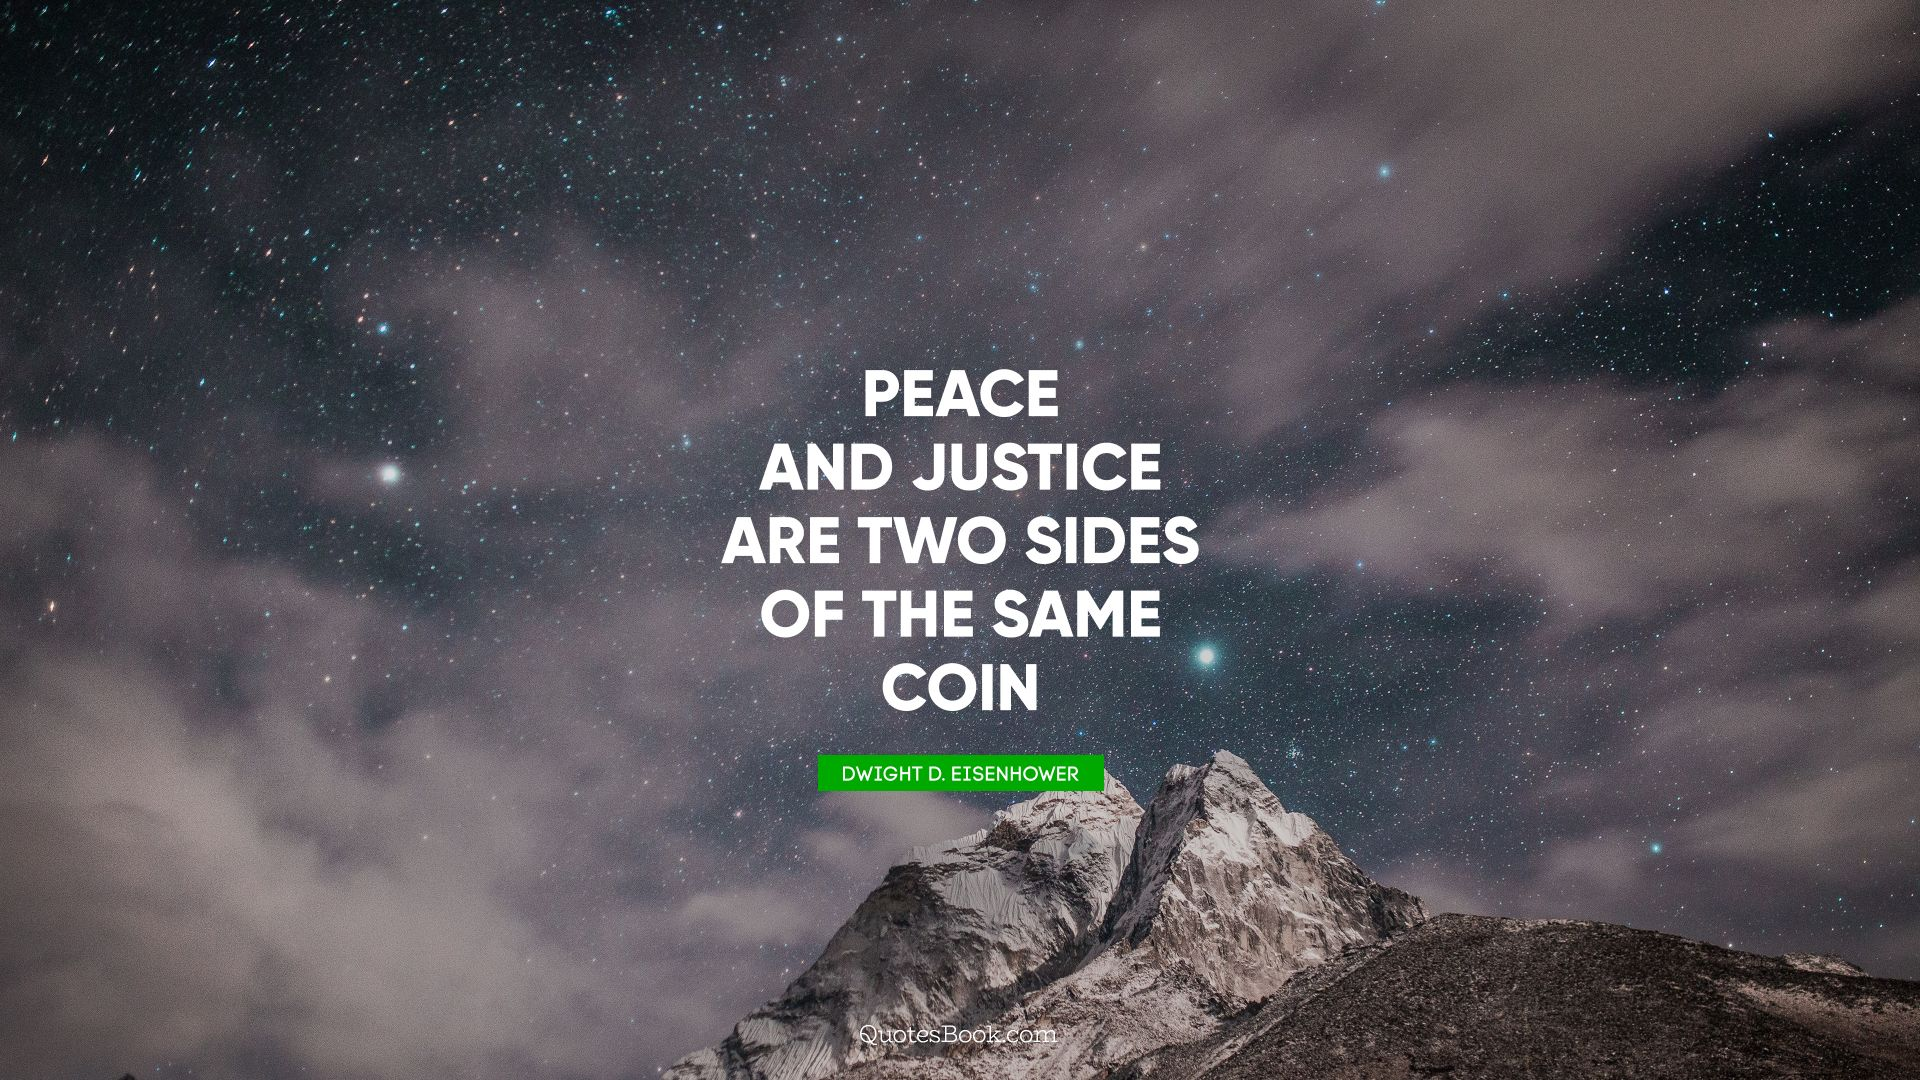 Peace and justice are two sides of the same coin. - Quote by Dwight D. Eisenhower